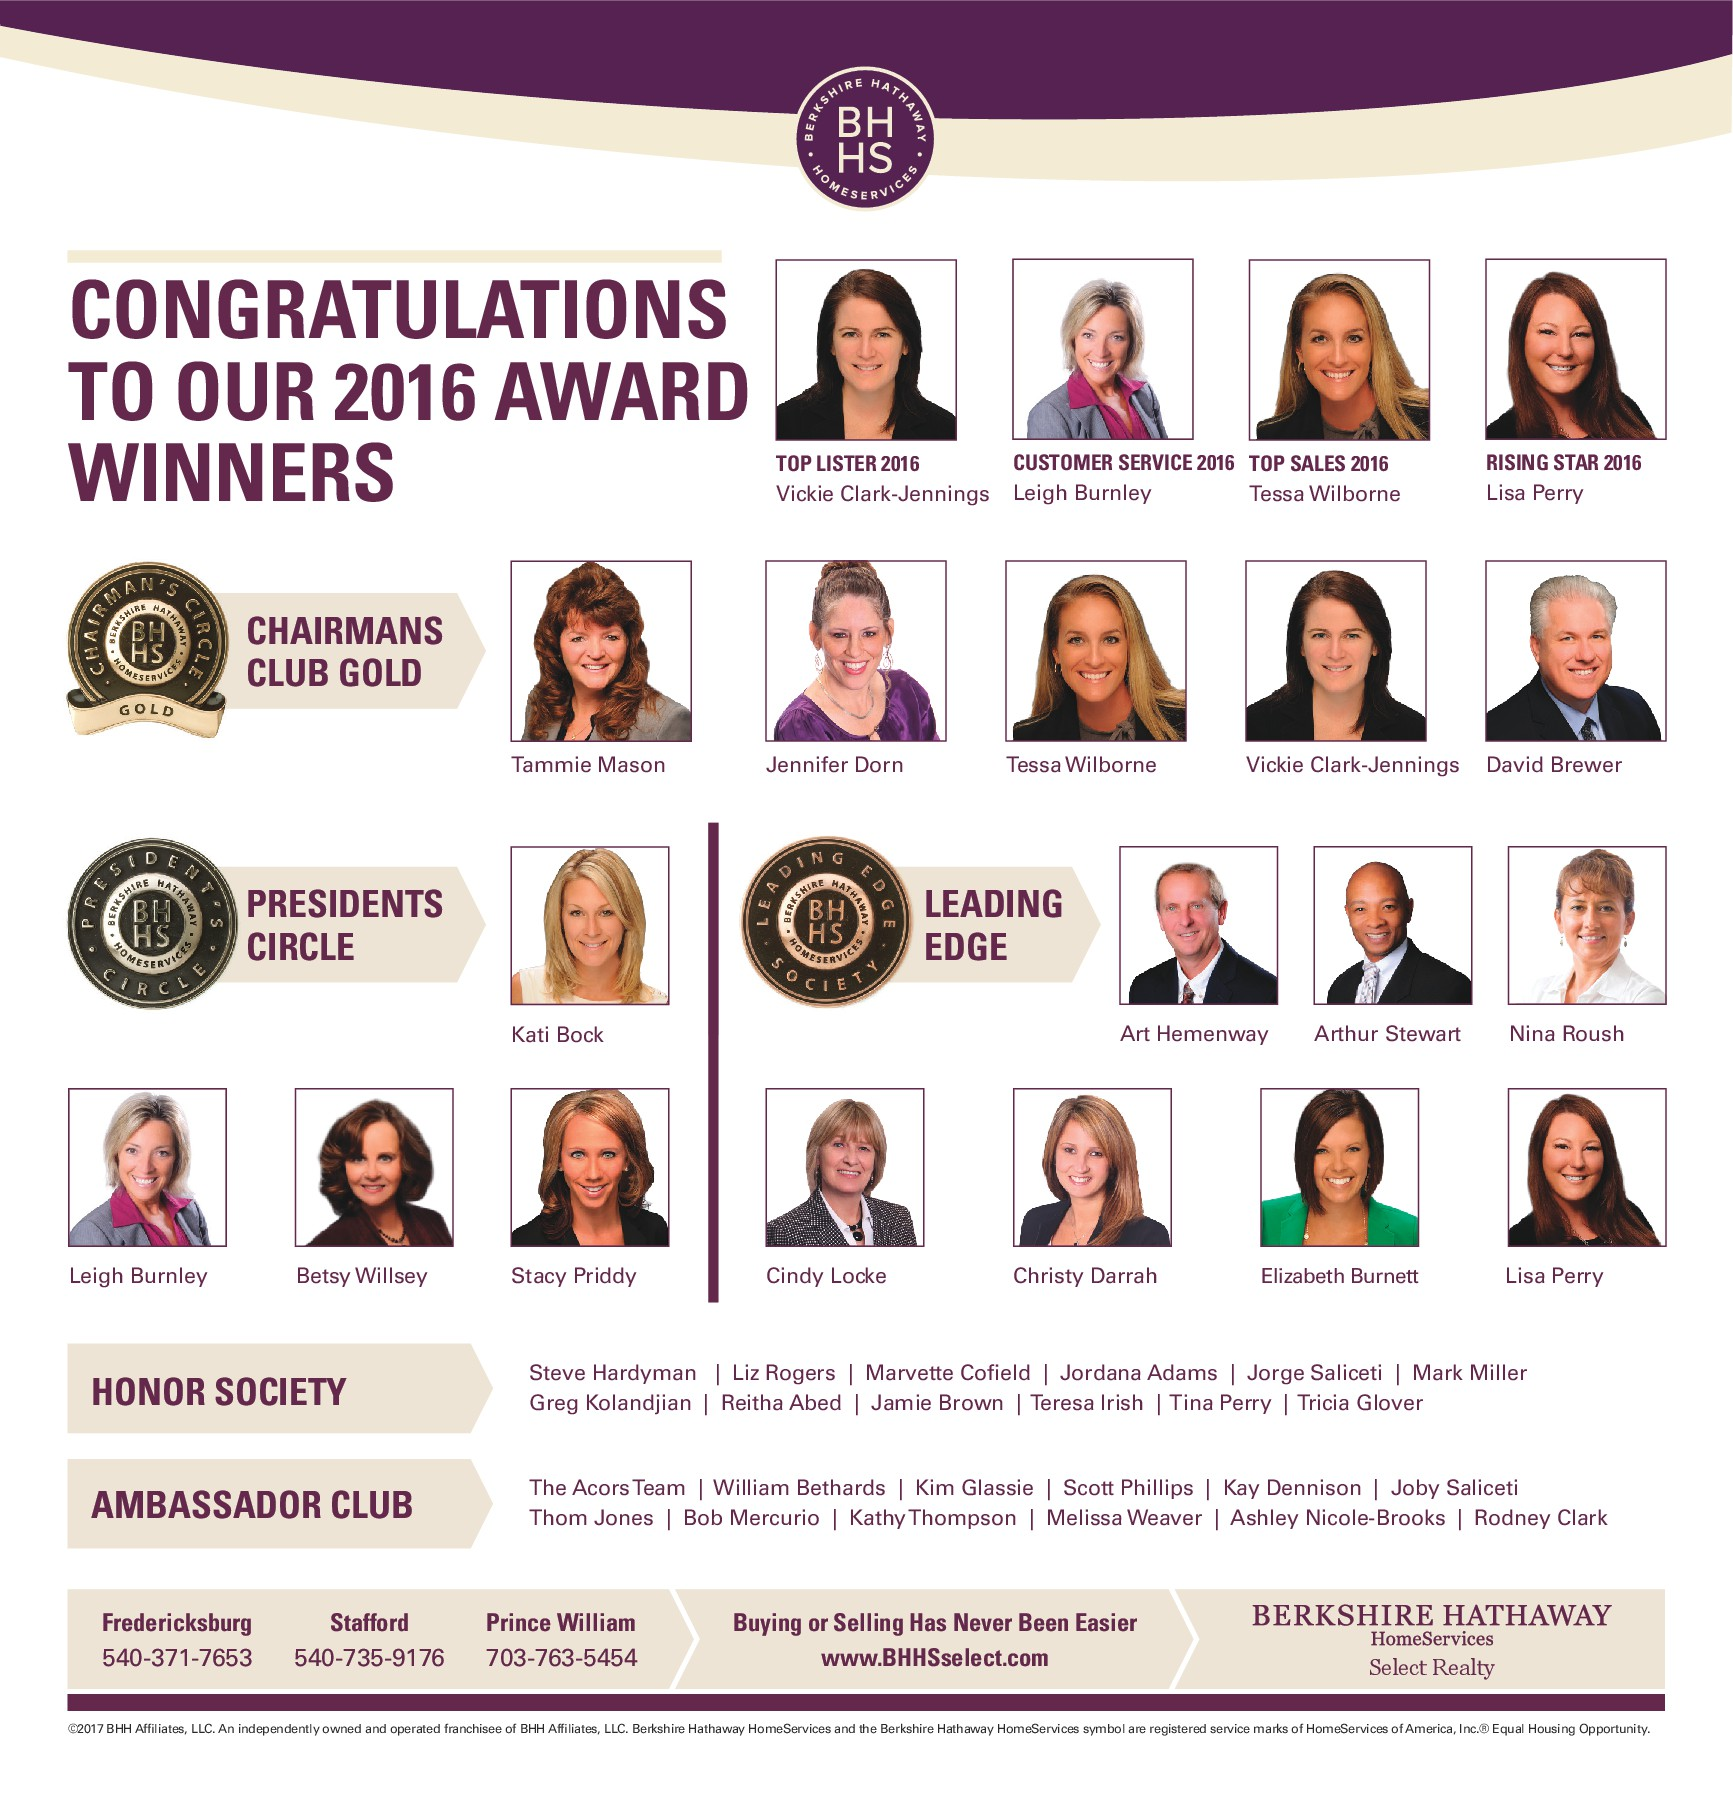 Berkshire Hathaway HomeServices Select Realty 2016 Award Winners